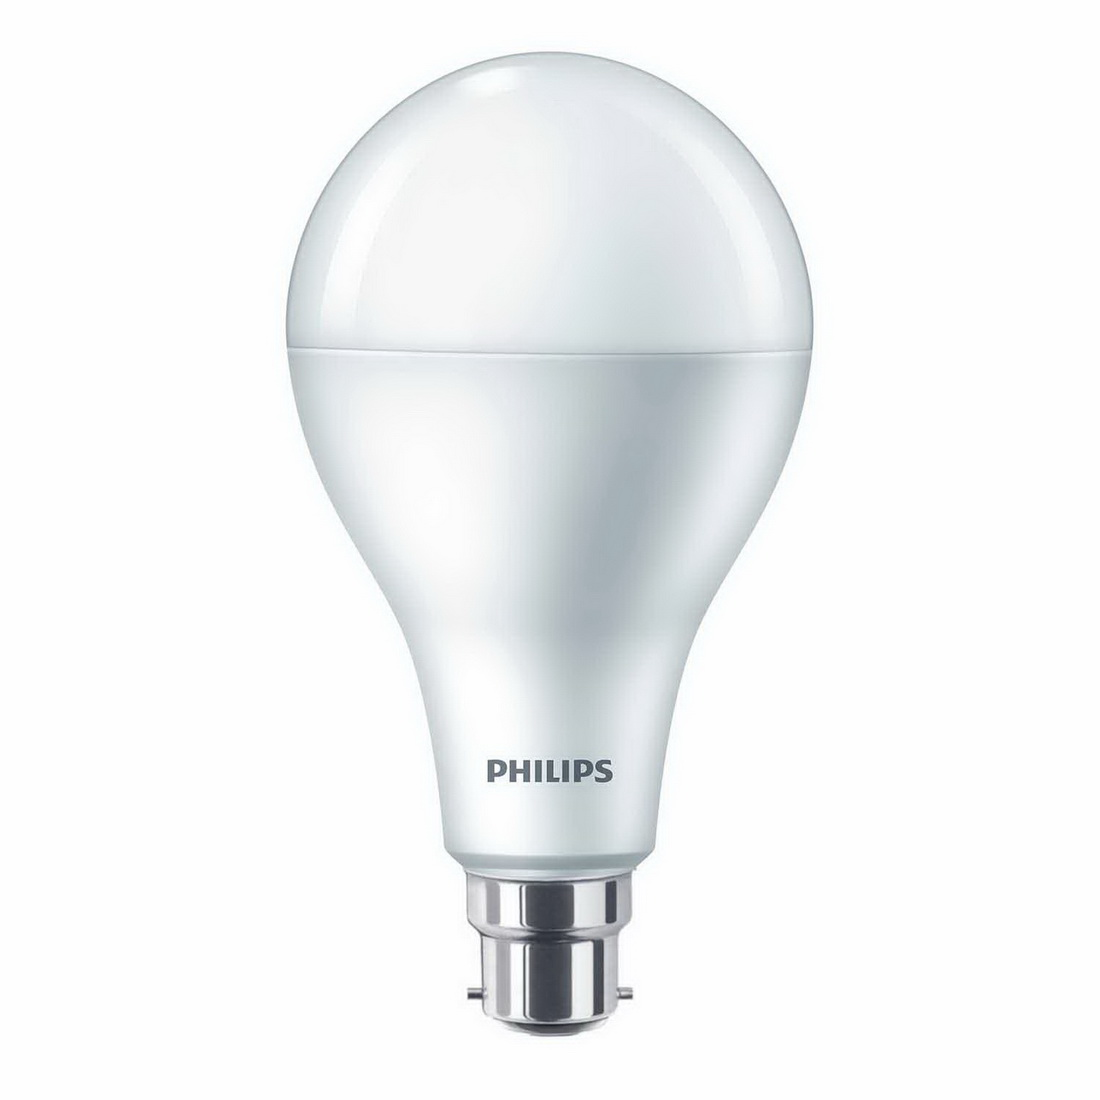 19W 230V 2300lm B22 6500K A80 Non-Dimmable High Lumen LED Bulb Cool Daylight